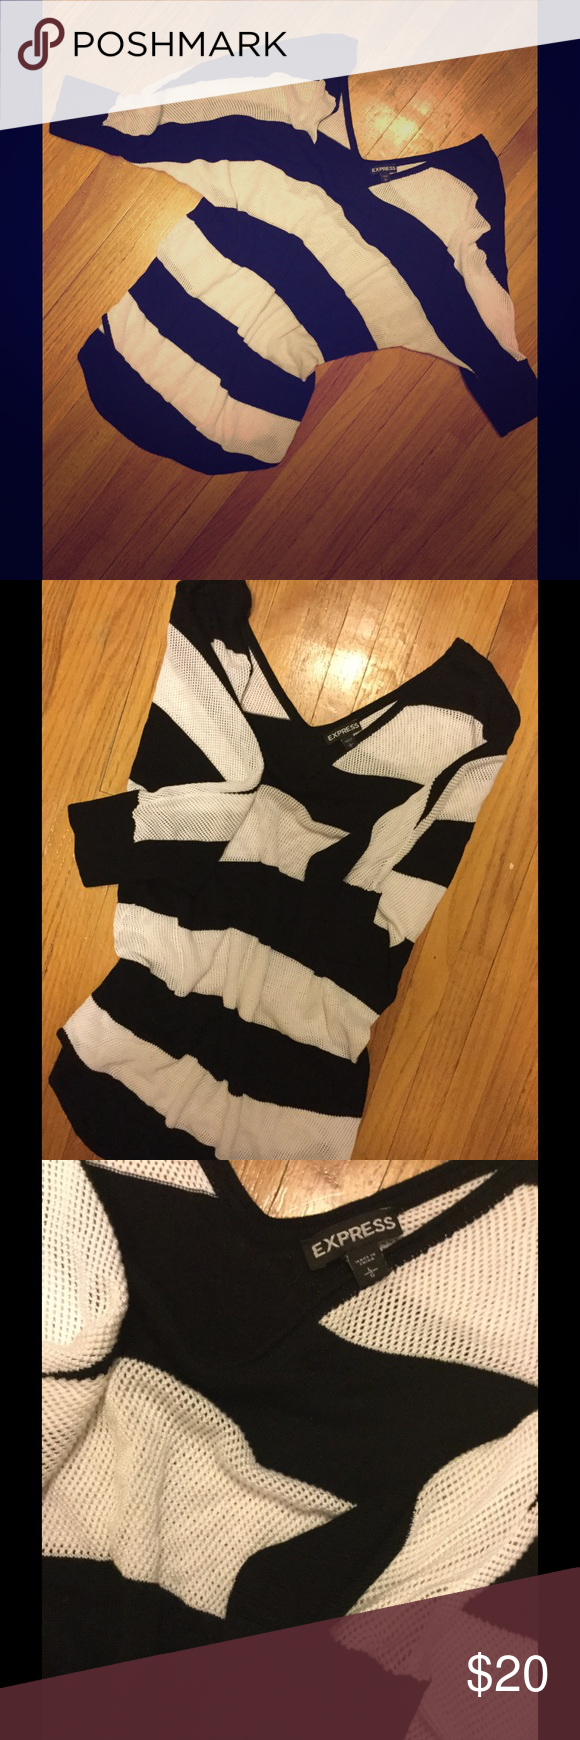 NWOT Express Knit 3/4 Length Top Never worn, but looks perfect w/ leggings and boots! Express Sweaters V-Necks